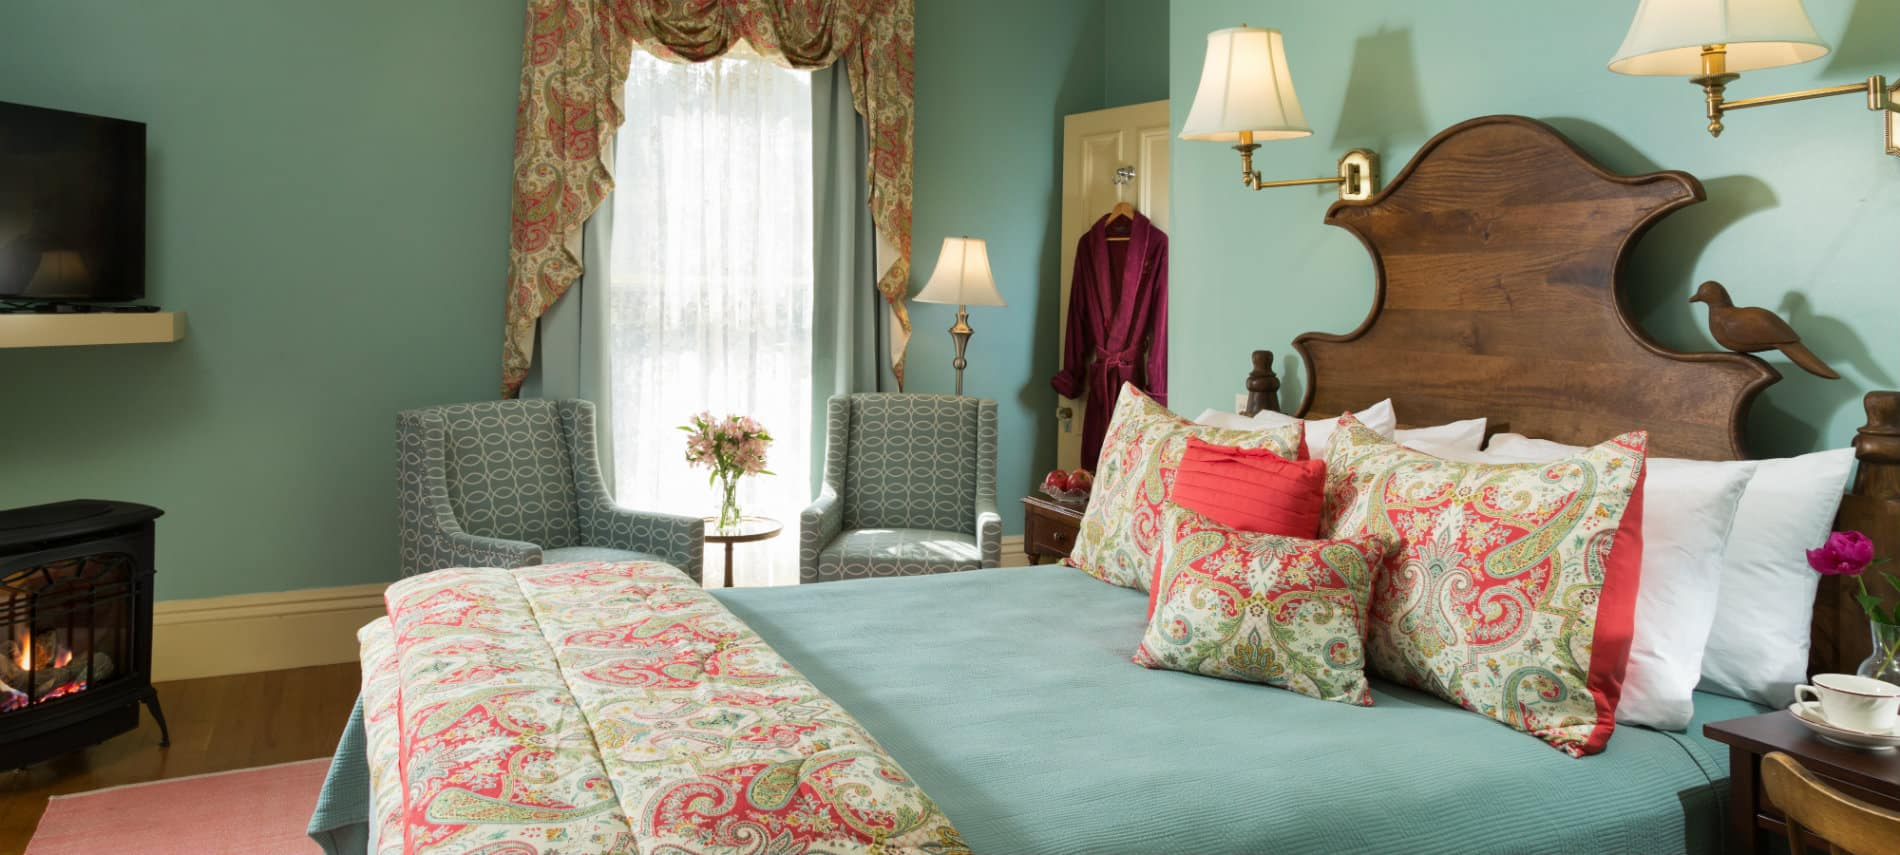 Bright and cheery guestroom with green bedding and walls accented in peach witha TV and freestanding fireplace.